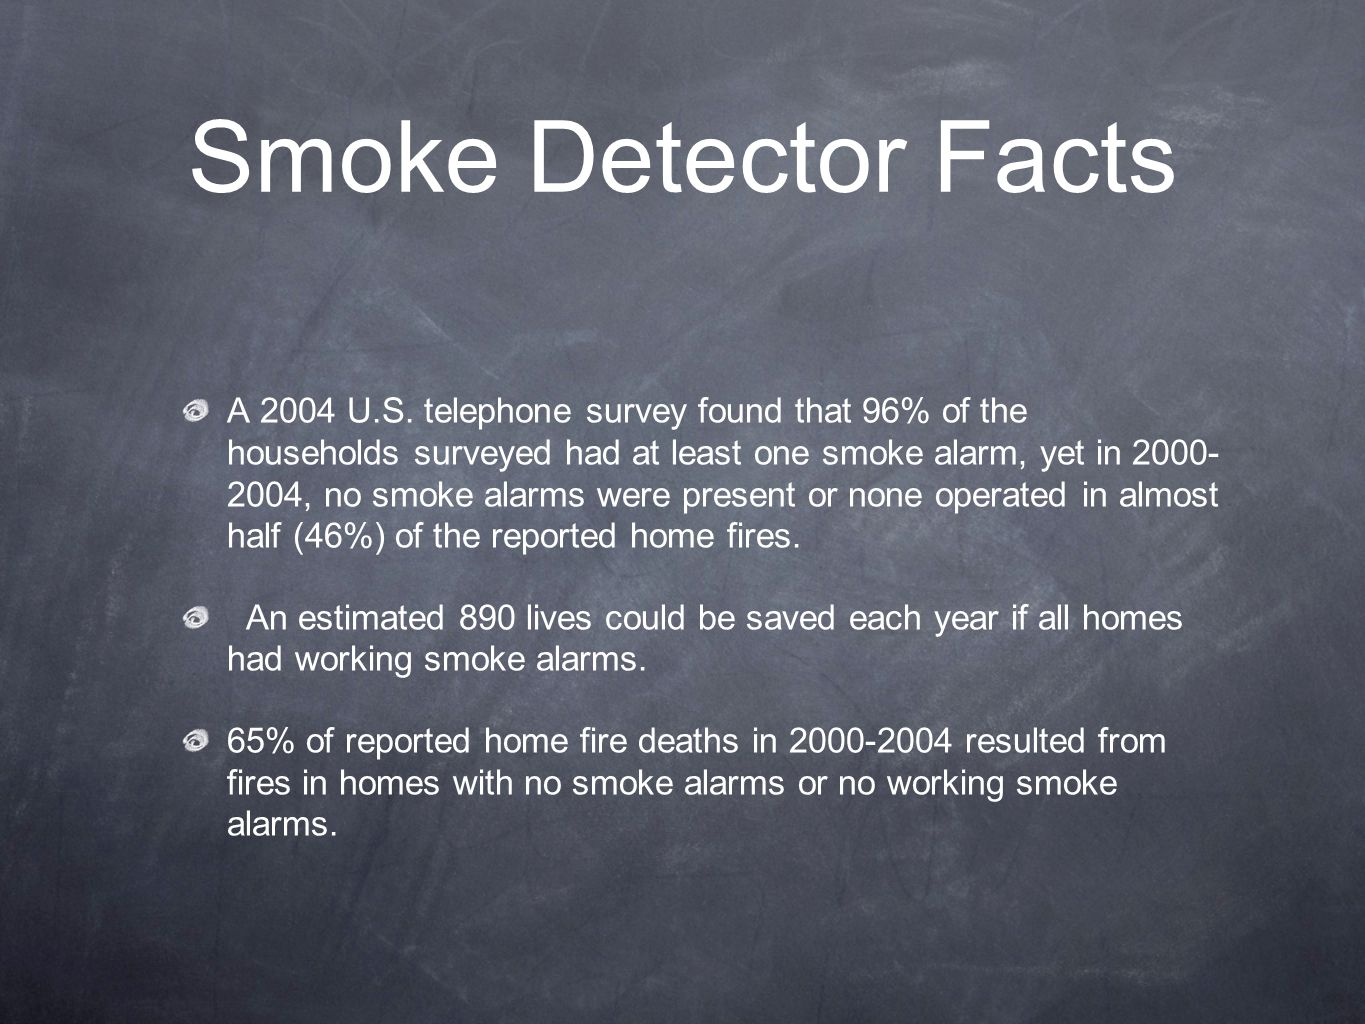 Smoke Detector Facts A 2004 U.S. telephone survey found that 96% of the households surveyed had at least one smoke alarm, yet in 2000- 2004, no smoke